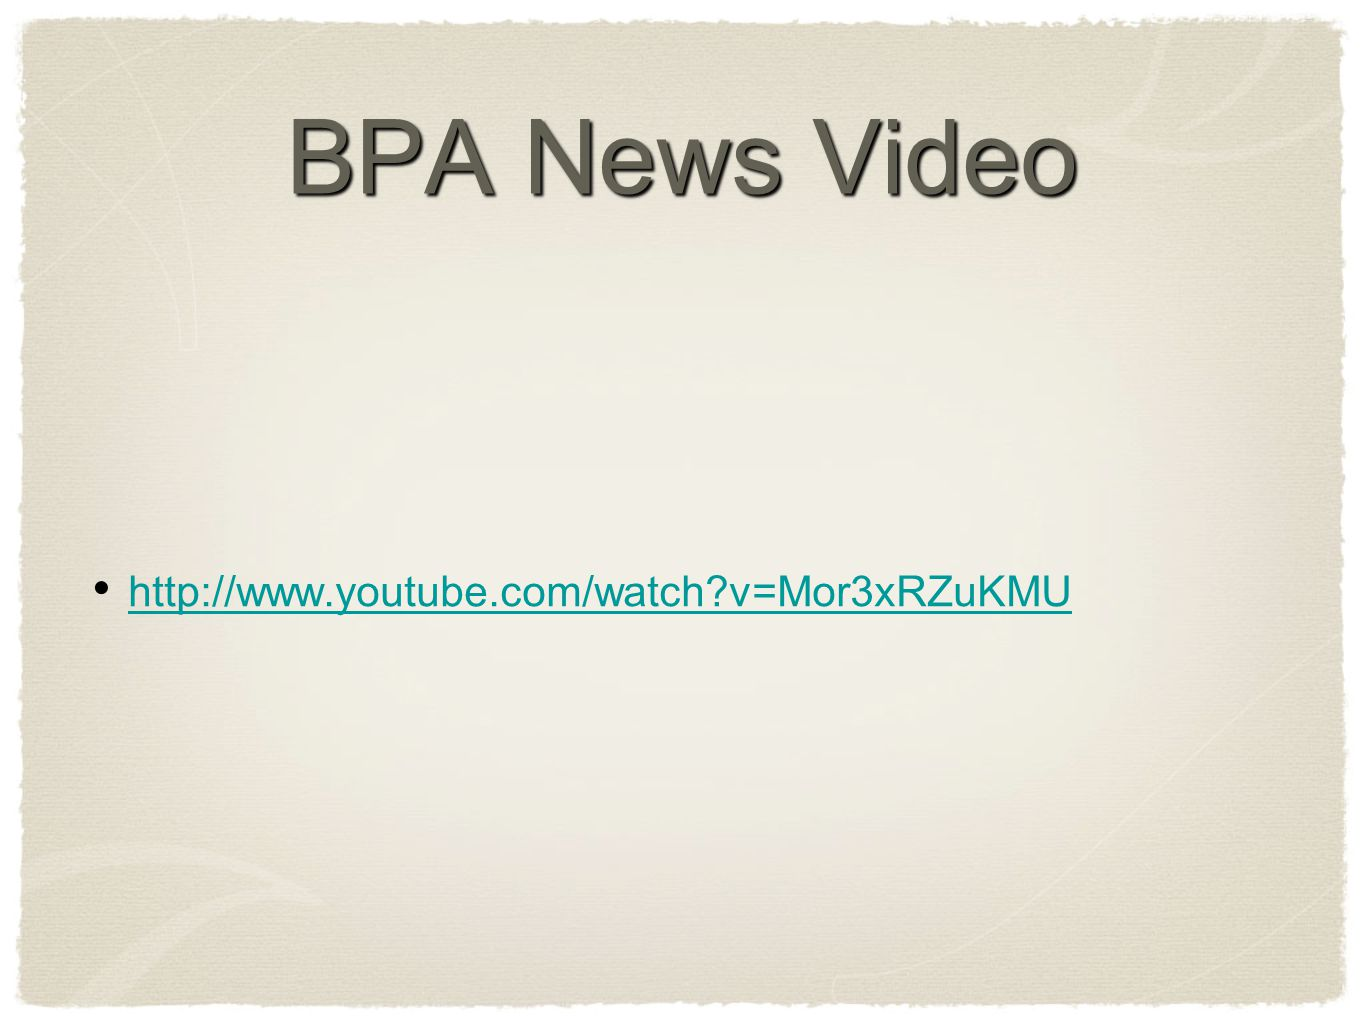 BPA Facts 2,2,-bis (4-hydrotphenyl) propane high productive chemical used in manufacture of numerous consumer goods and products a known endocrine disrupting chemical In 2004, 2.3 billion pounds produced in U.S 3/4 used in manufacture of polycarbonate resins for food and beverage storage Polycarbonate is recycling #7